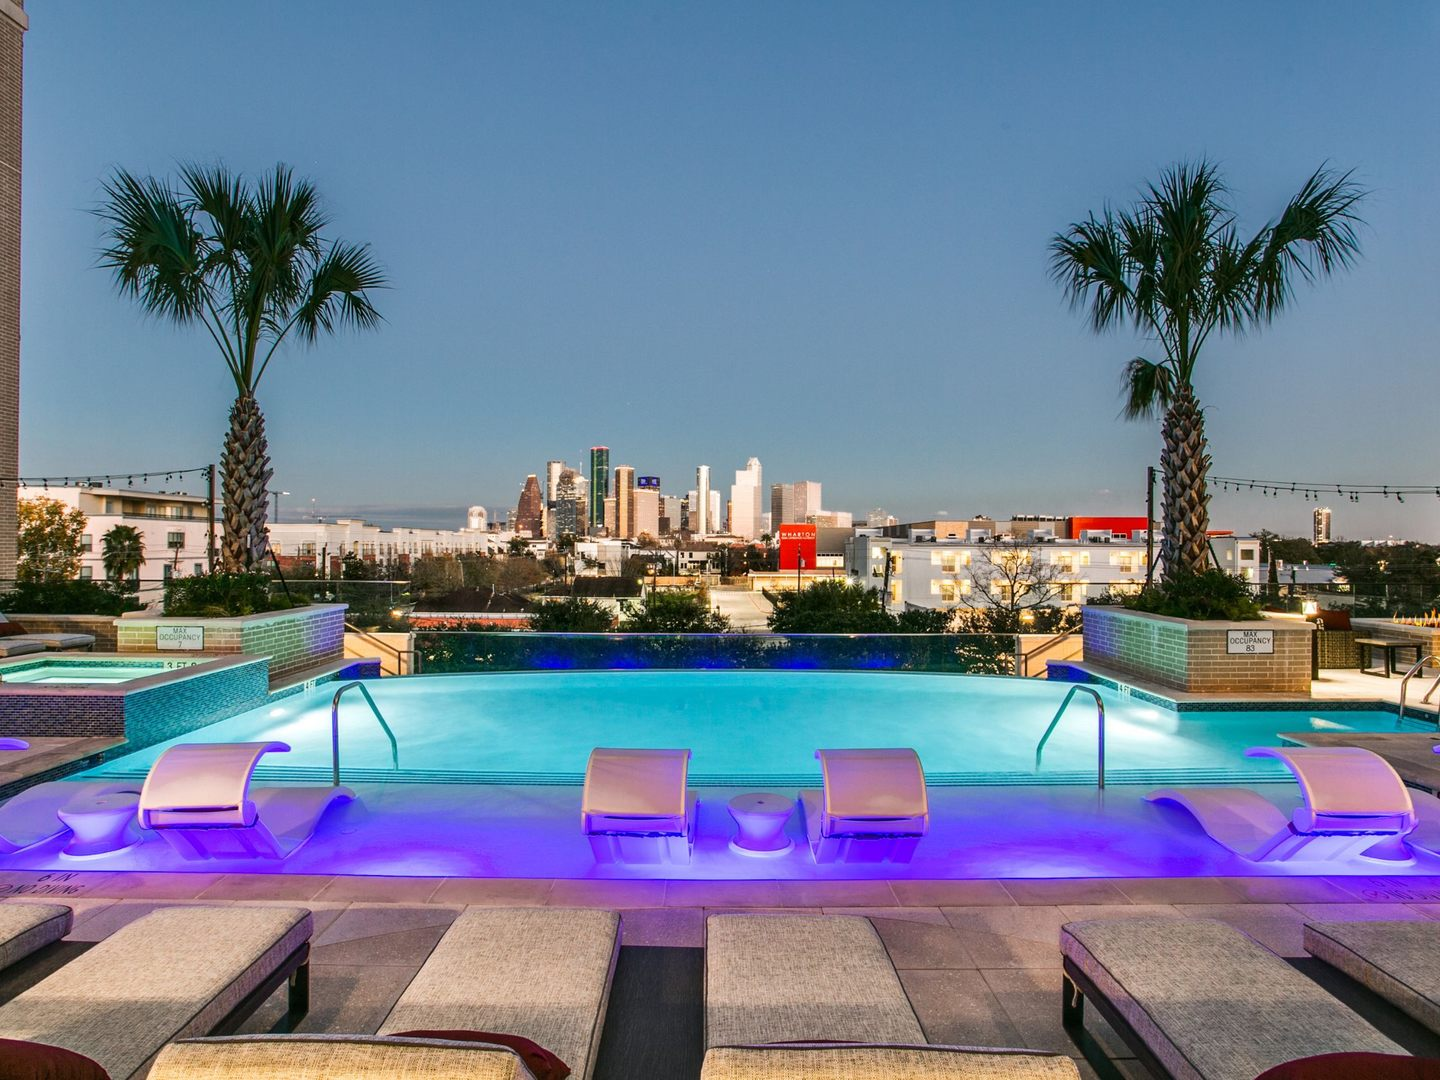 Swimming pool with seating and tanning ledge and view of city